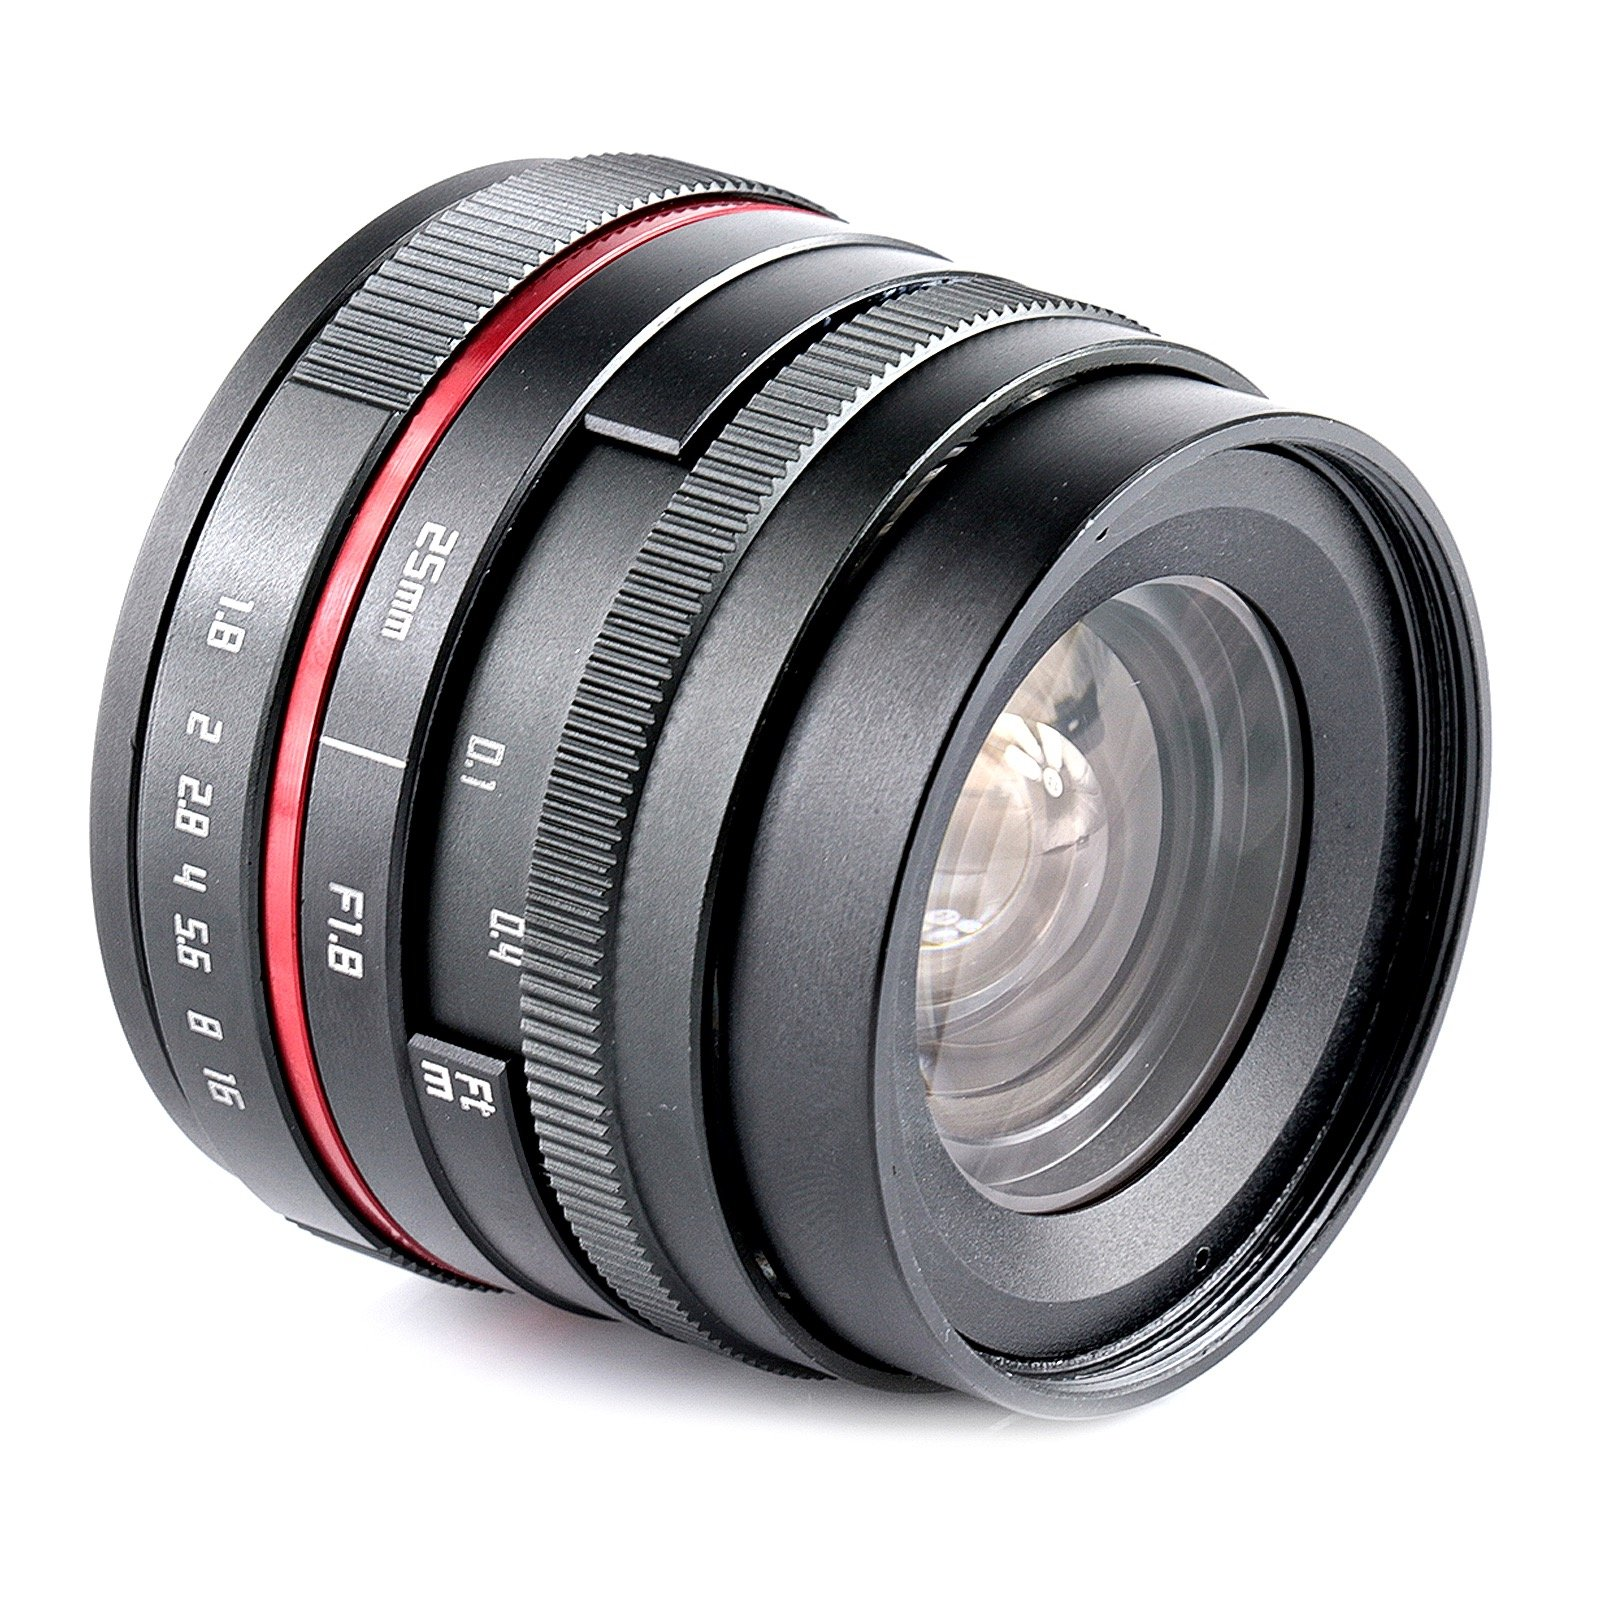 25 F1.8 red circle wide angle high definition lens with muti-coating glass for Micro 4/3 Olympus EM10 EM5II or Panasonic GH5 GF9